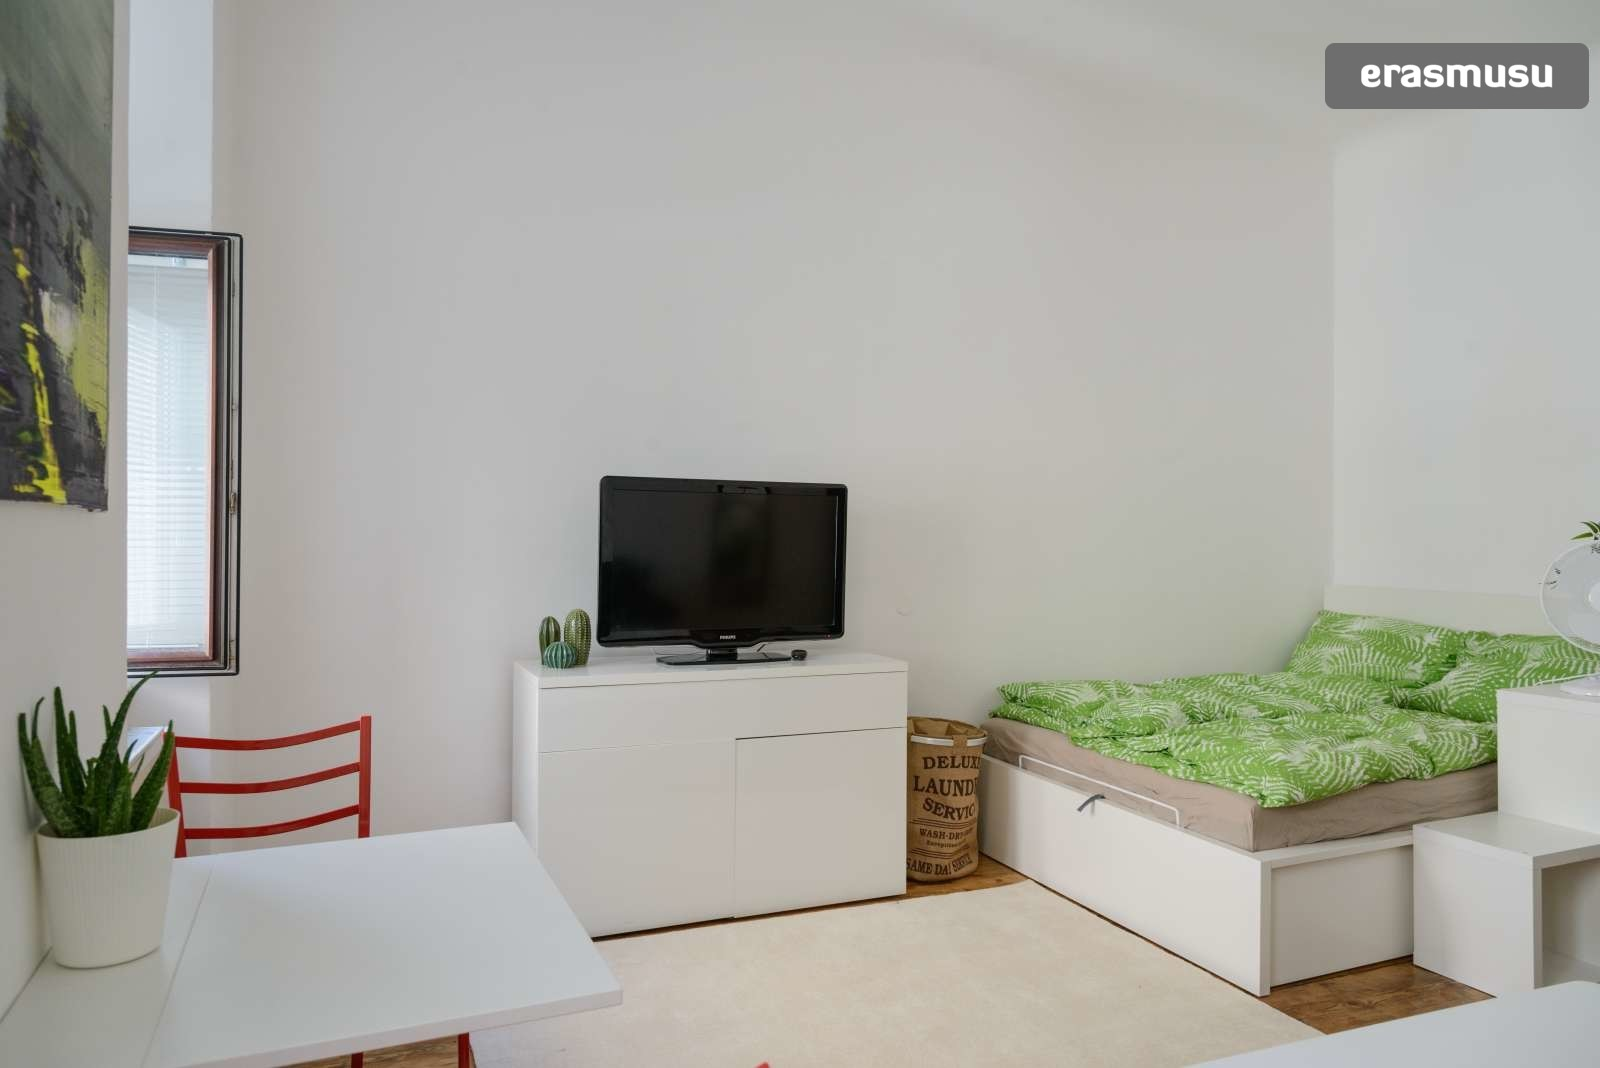 studio-apartment-rent-mariahilf-a4c33ccb5290dcbddc9fbe1fb30fdfb7